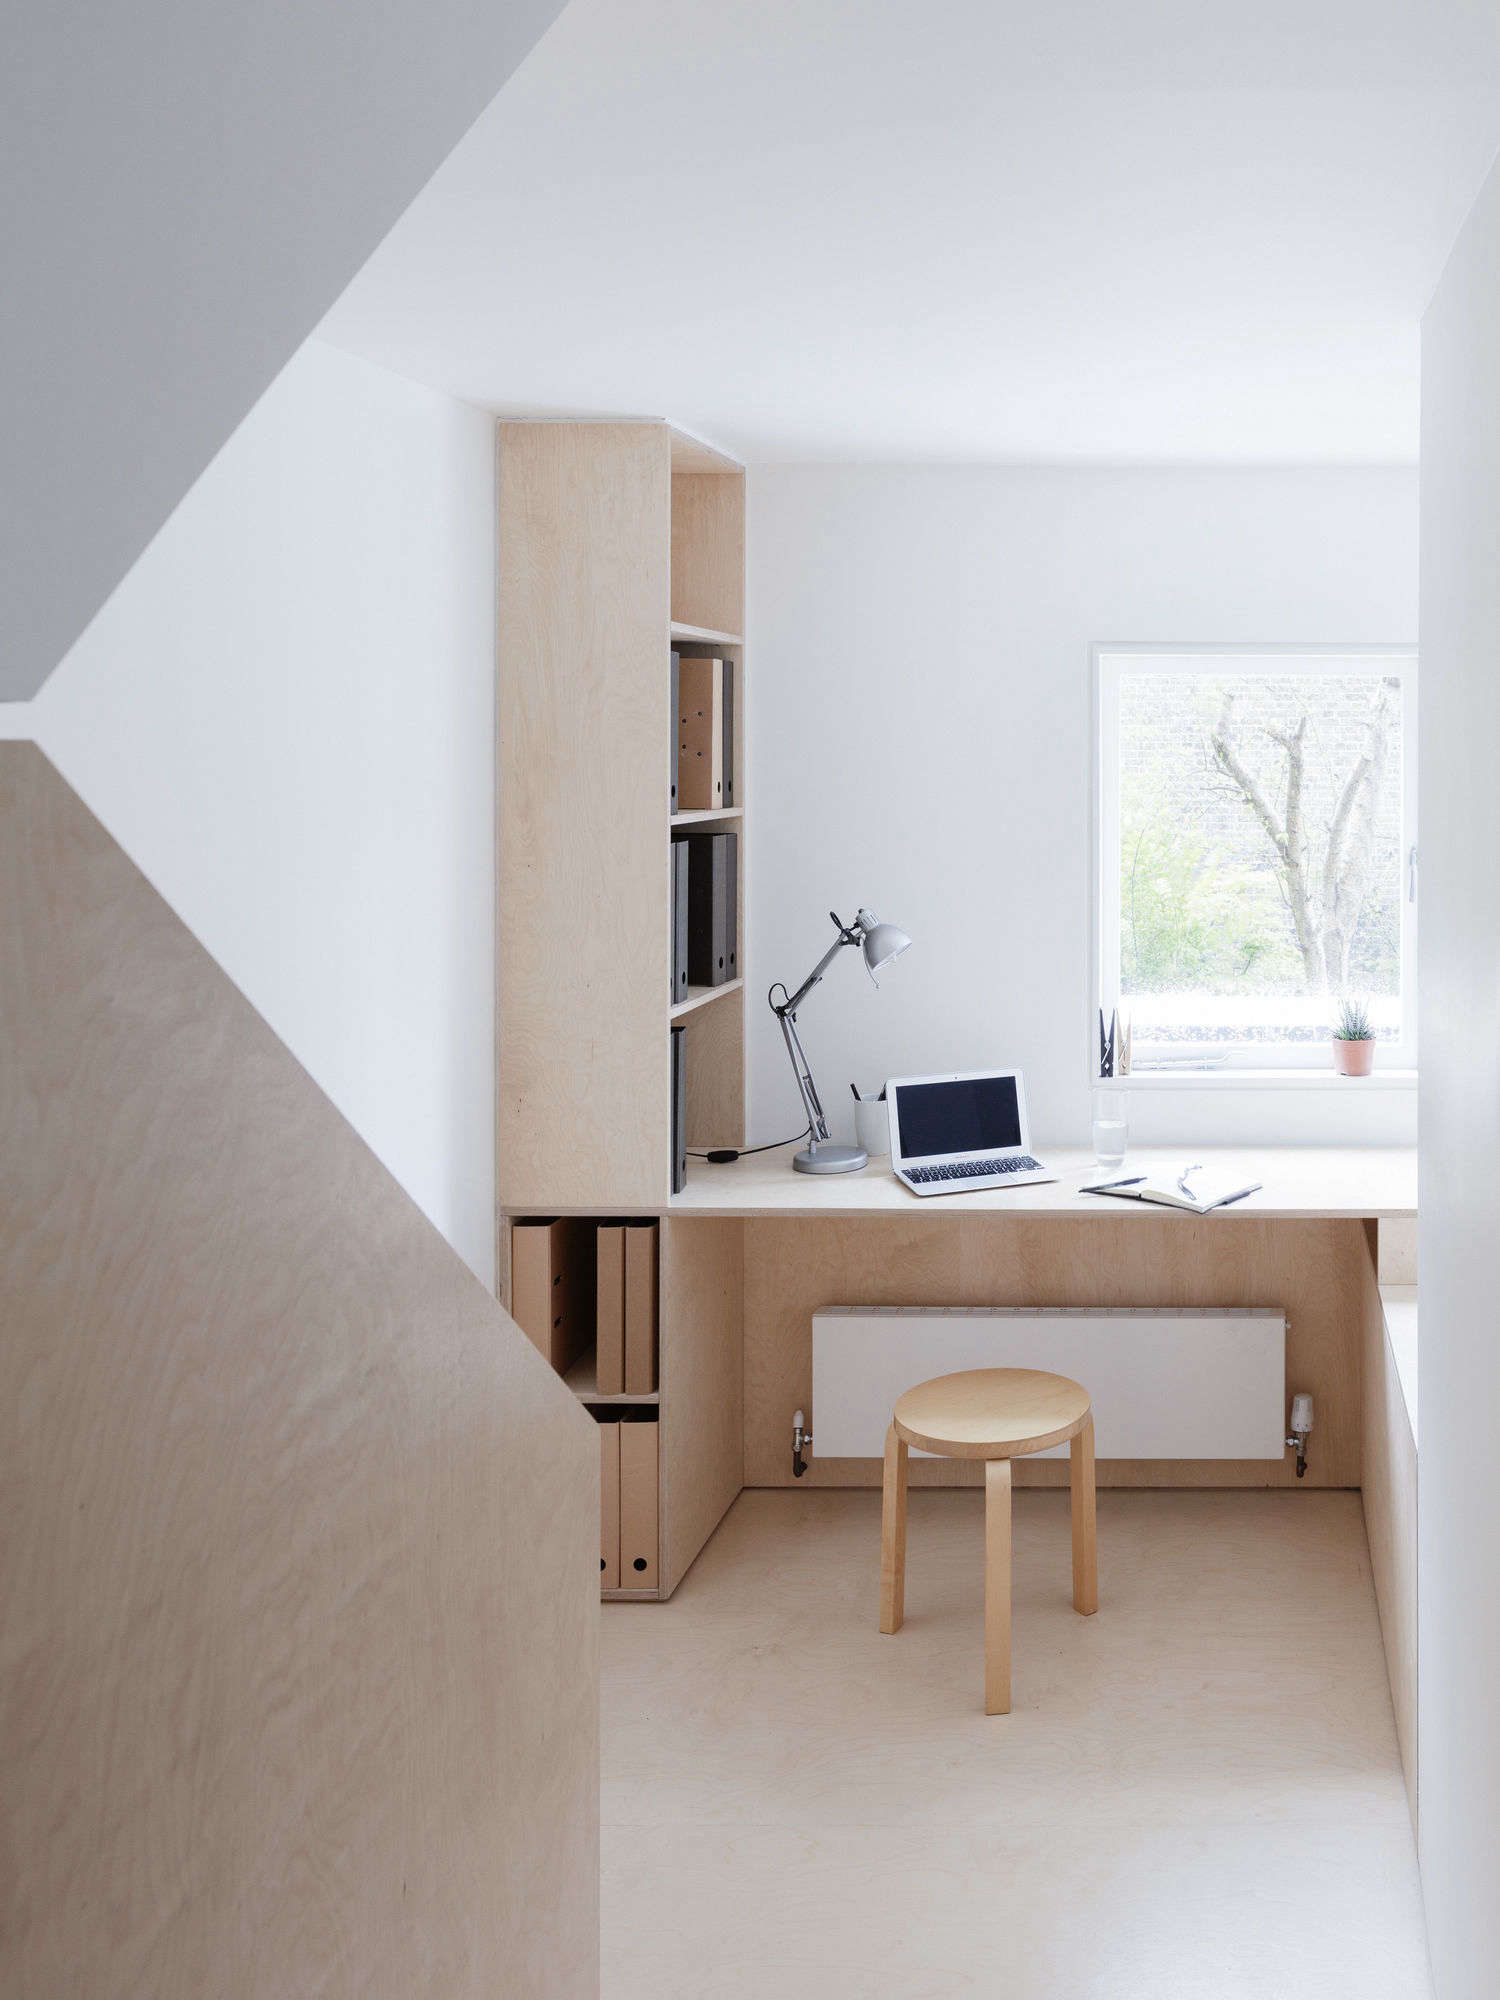 Larissa Johnston Architects Birch Plywood Desk On Landing, Rory Gardiner Photo